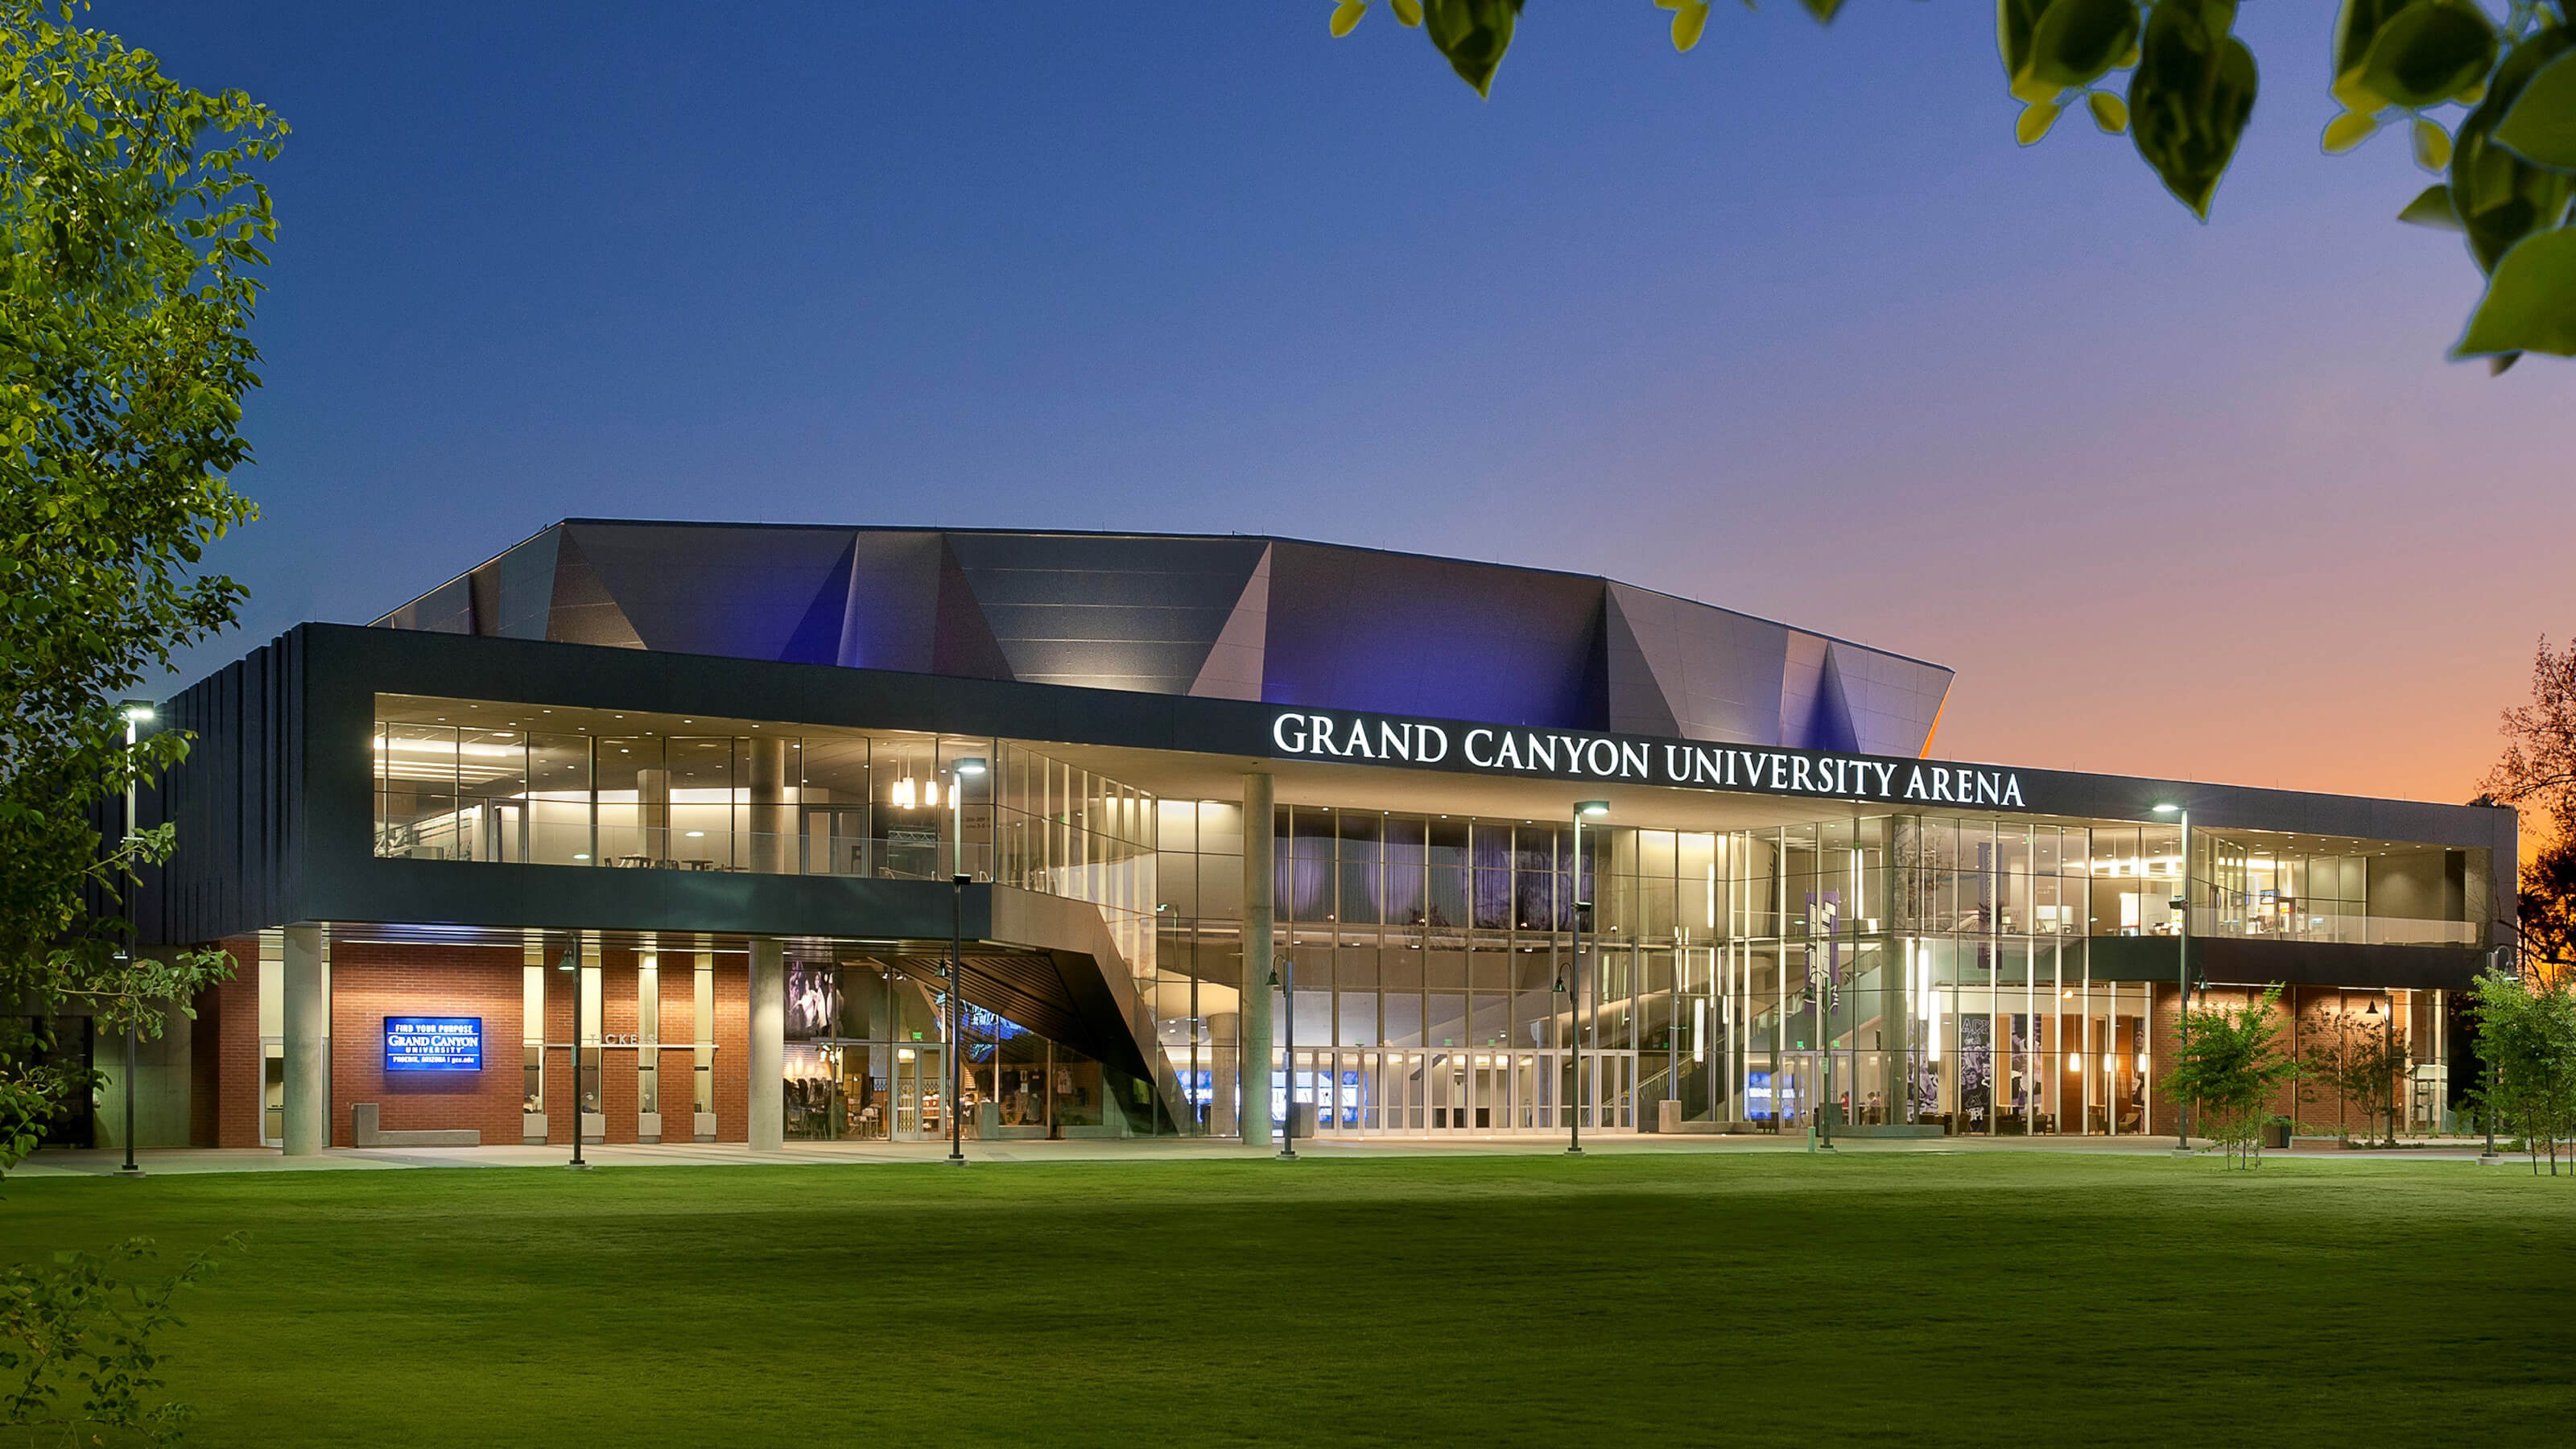 Grand Canyon University Online Thebestschools Org